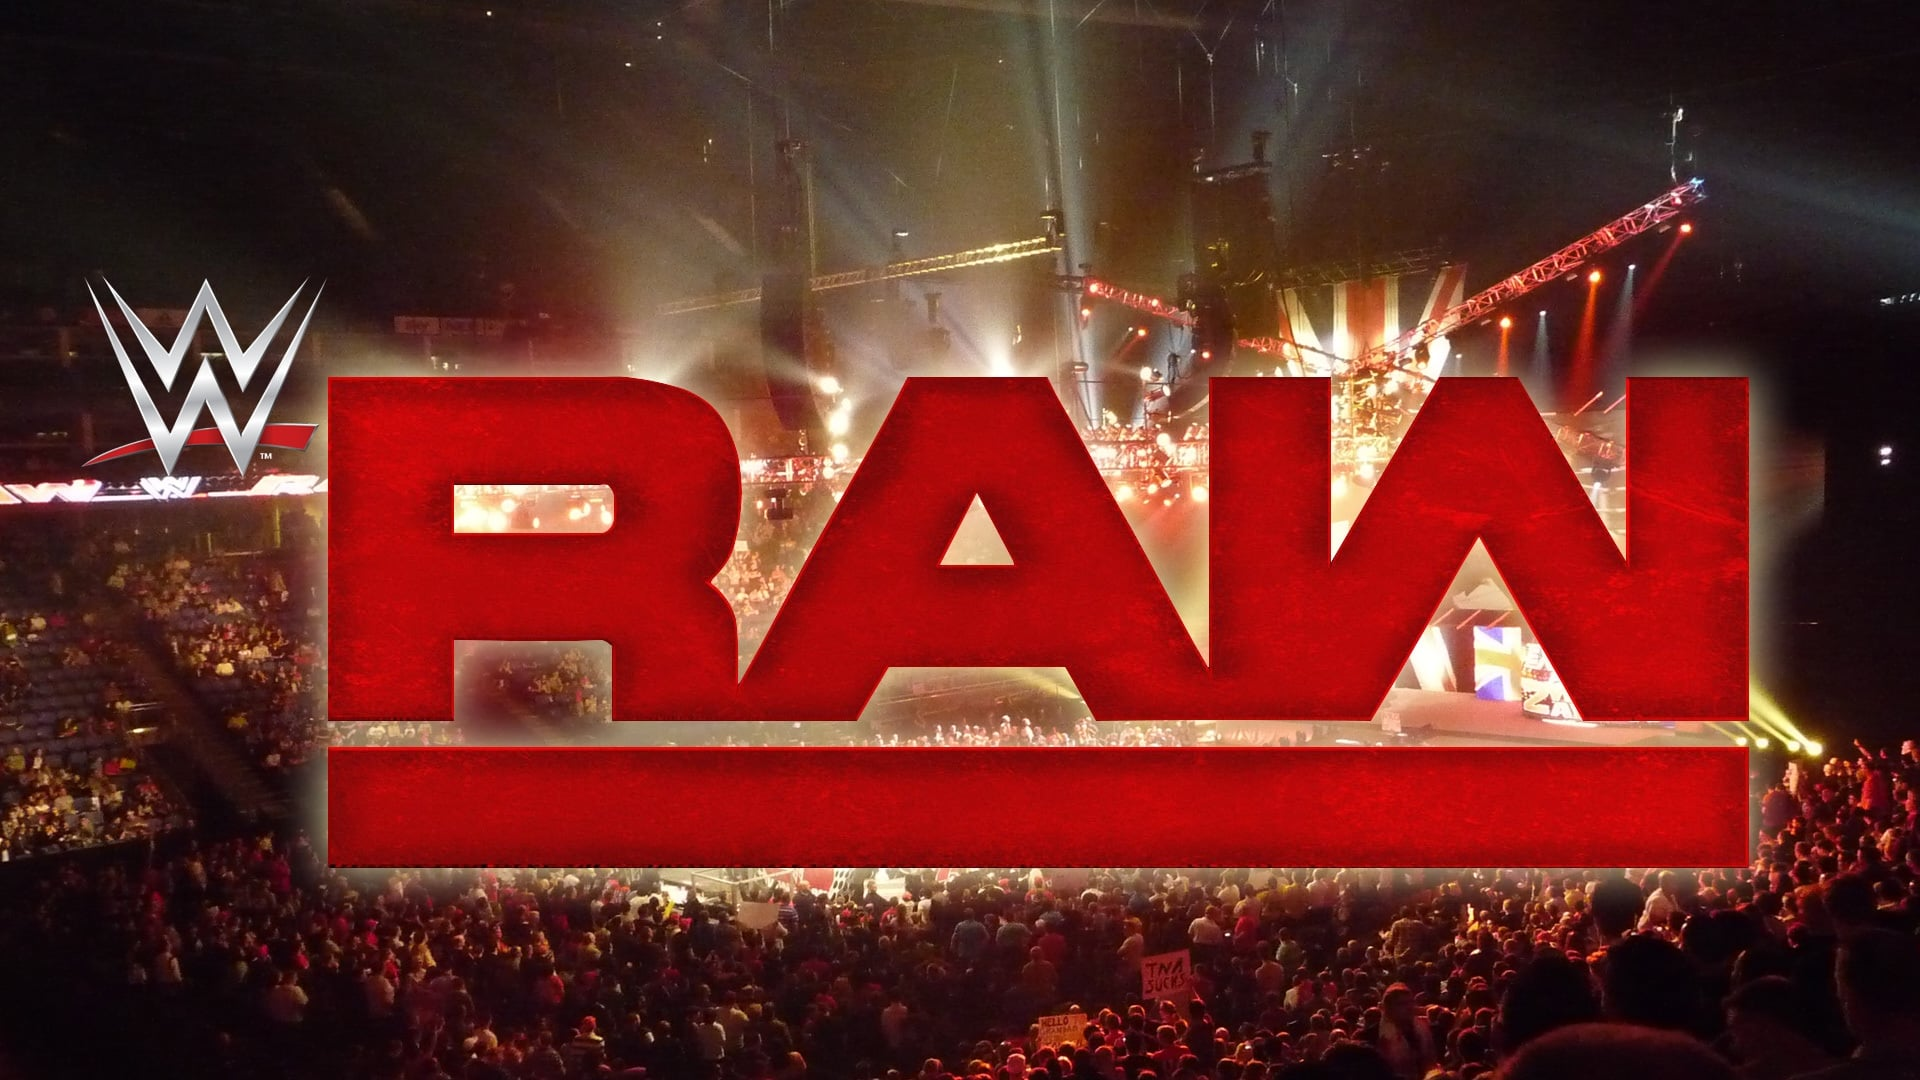 WWE Raw - Season 21 Episode 36 : September 9, 2013